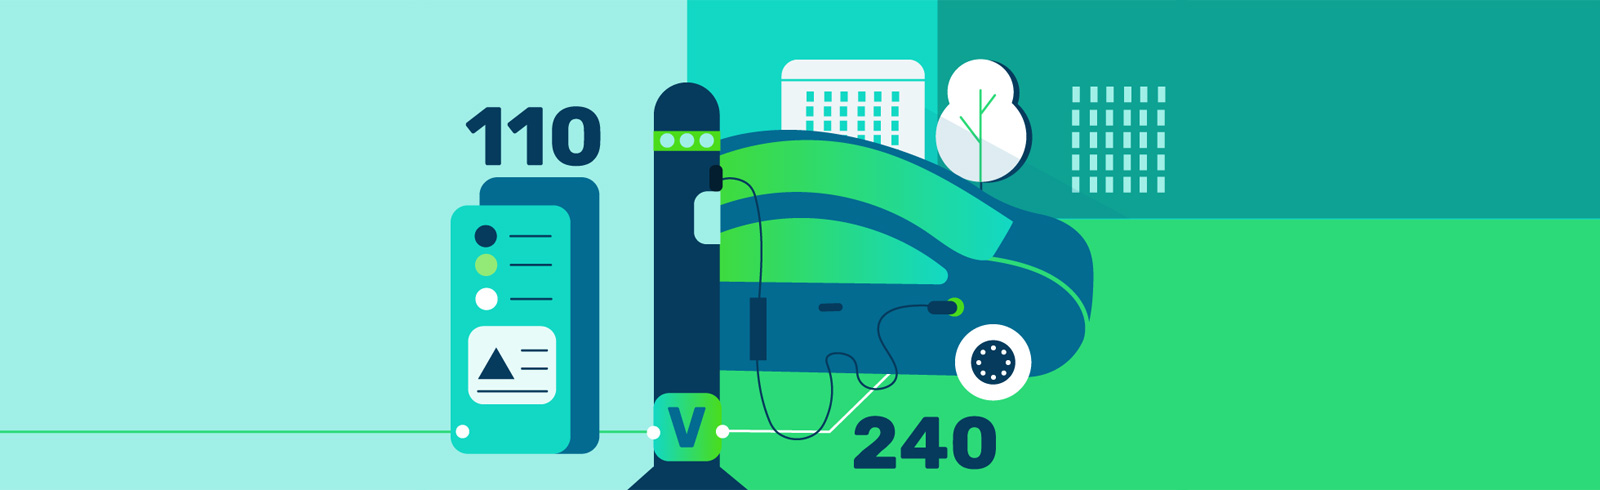 Electric vehicles: harmonising labelling across the entire EU